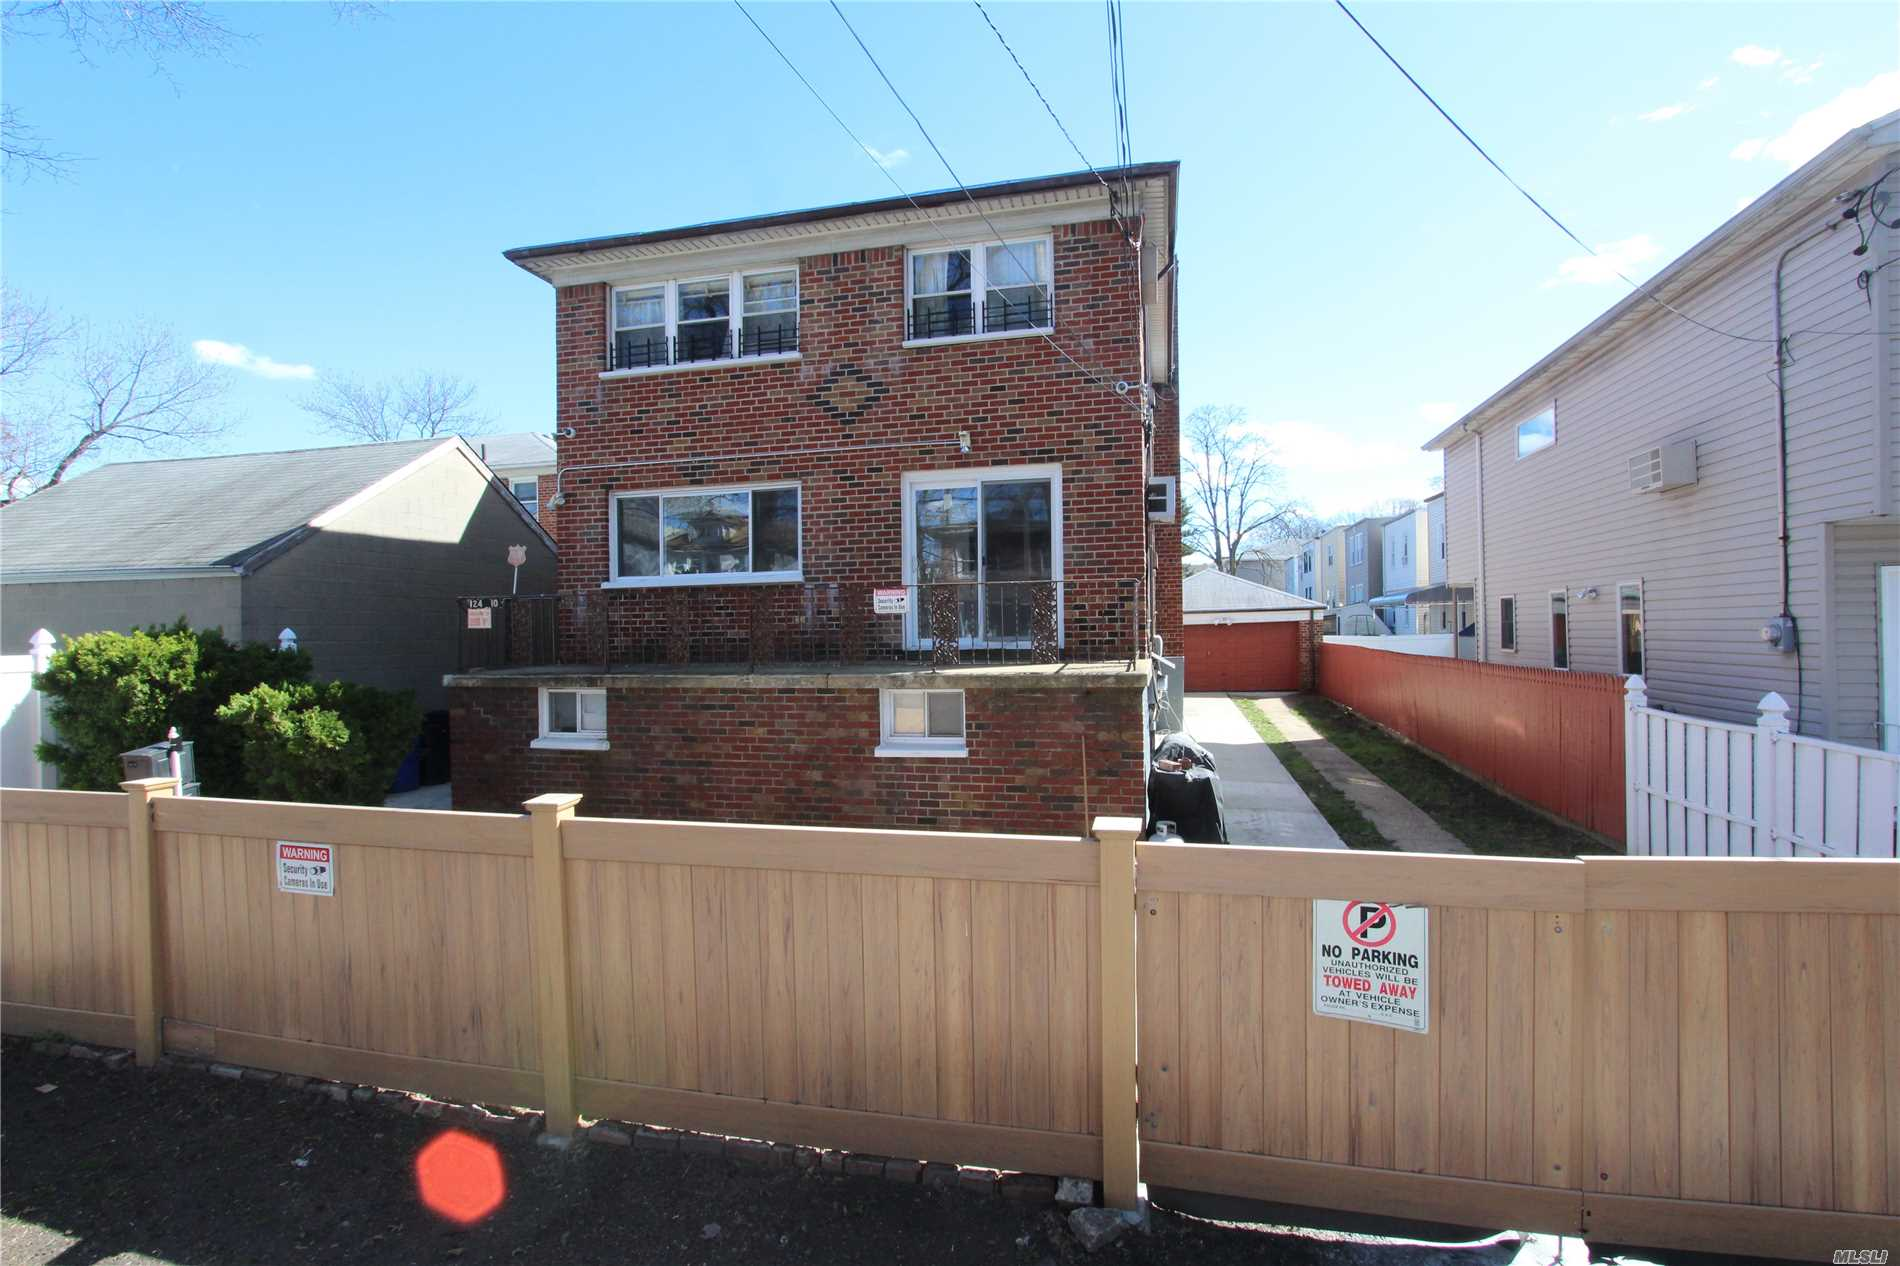 Detached Brick Two Family Home. 50 X 100 Lot Size. 28 X 51 Building Size (2, 856 Sq.Ft.) Built In 1964.